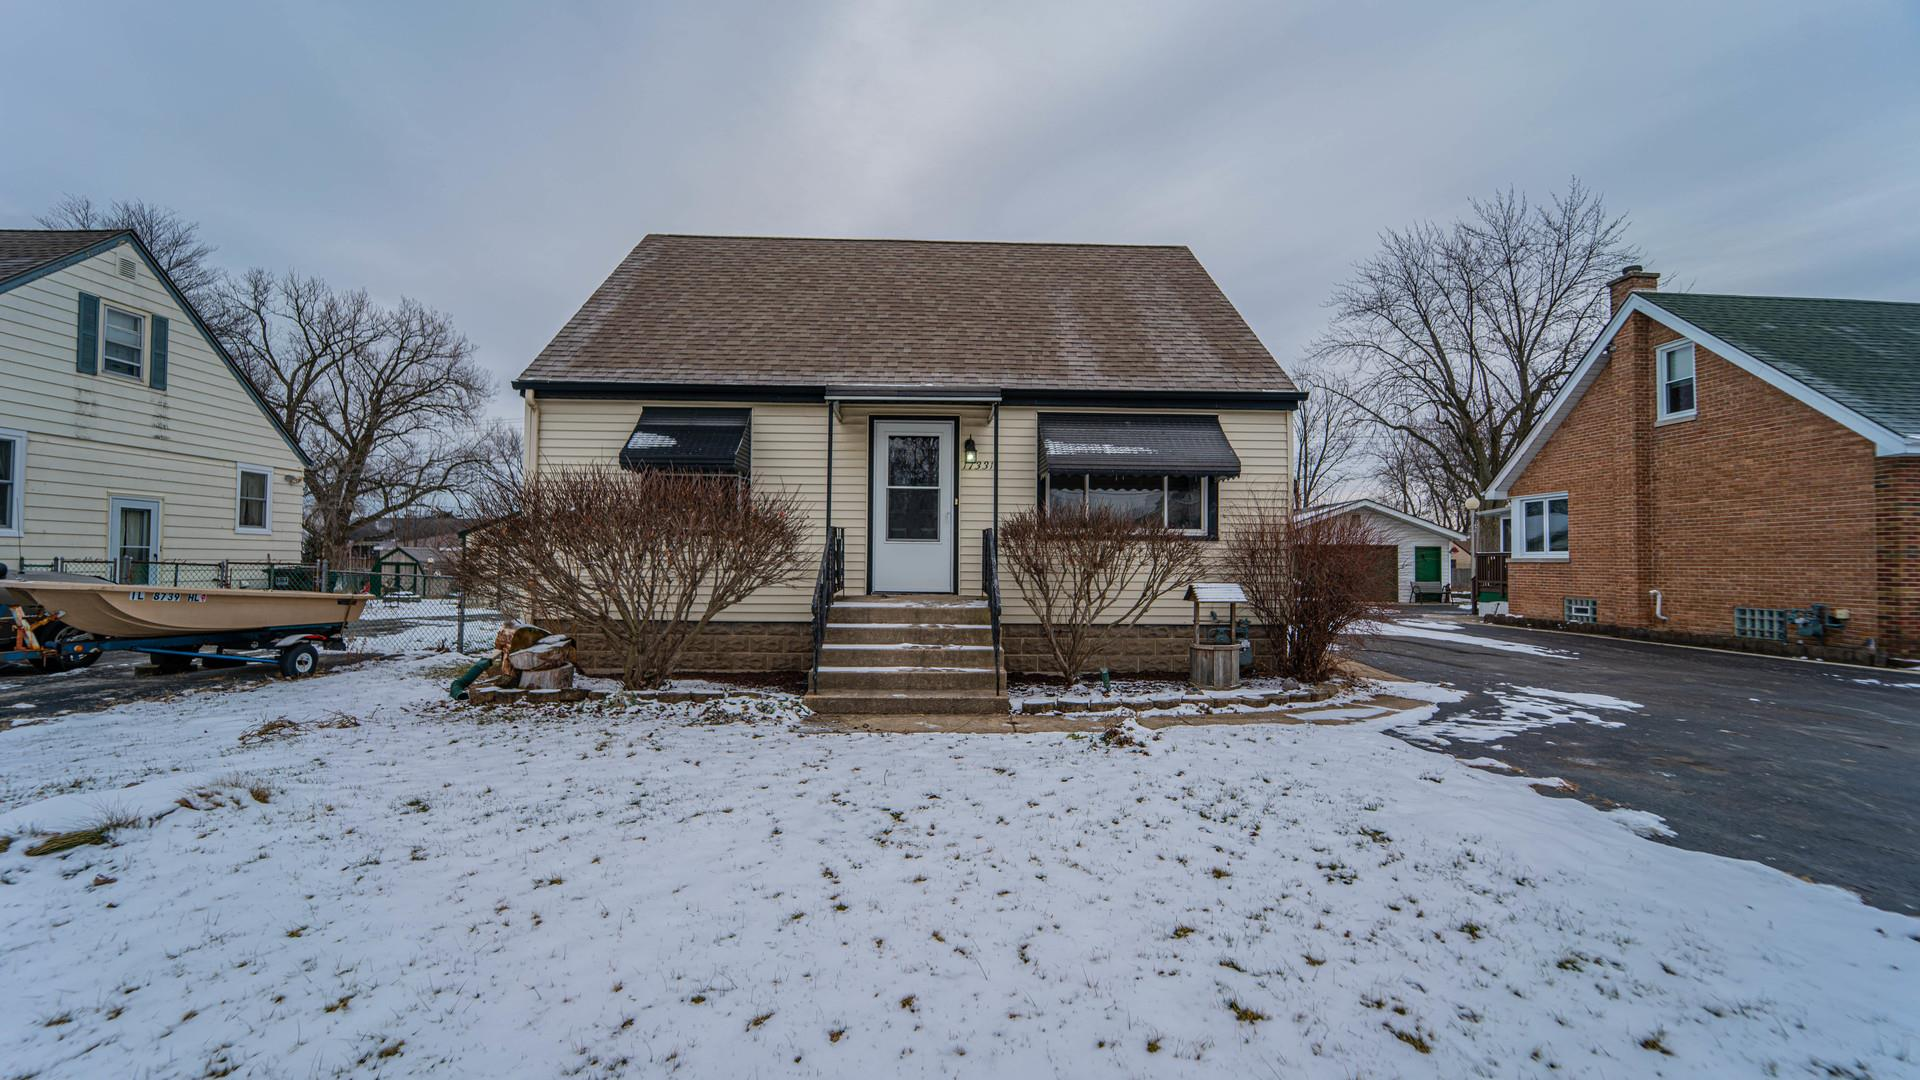 17331 65th Avenue, Tinley Park, IL 60477 - #: 10976917